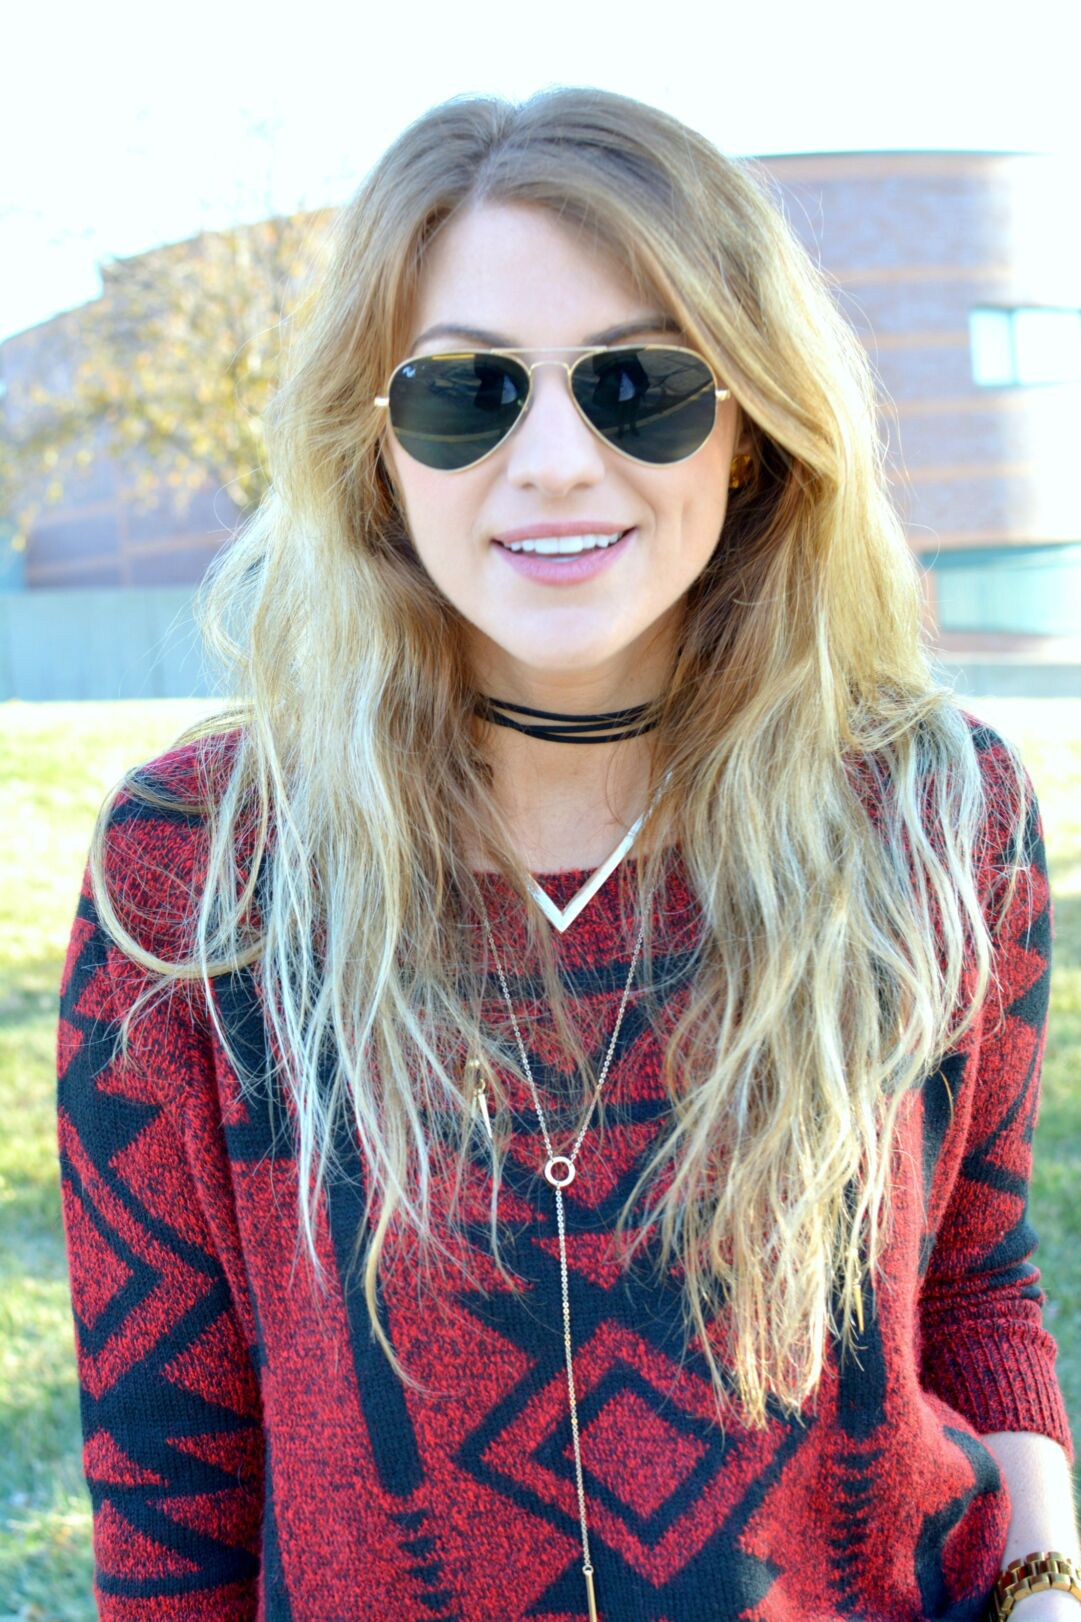 b09be4ba86 Ashley from LSR in a red and black sweater with a Vanessa Mooney choker